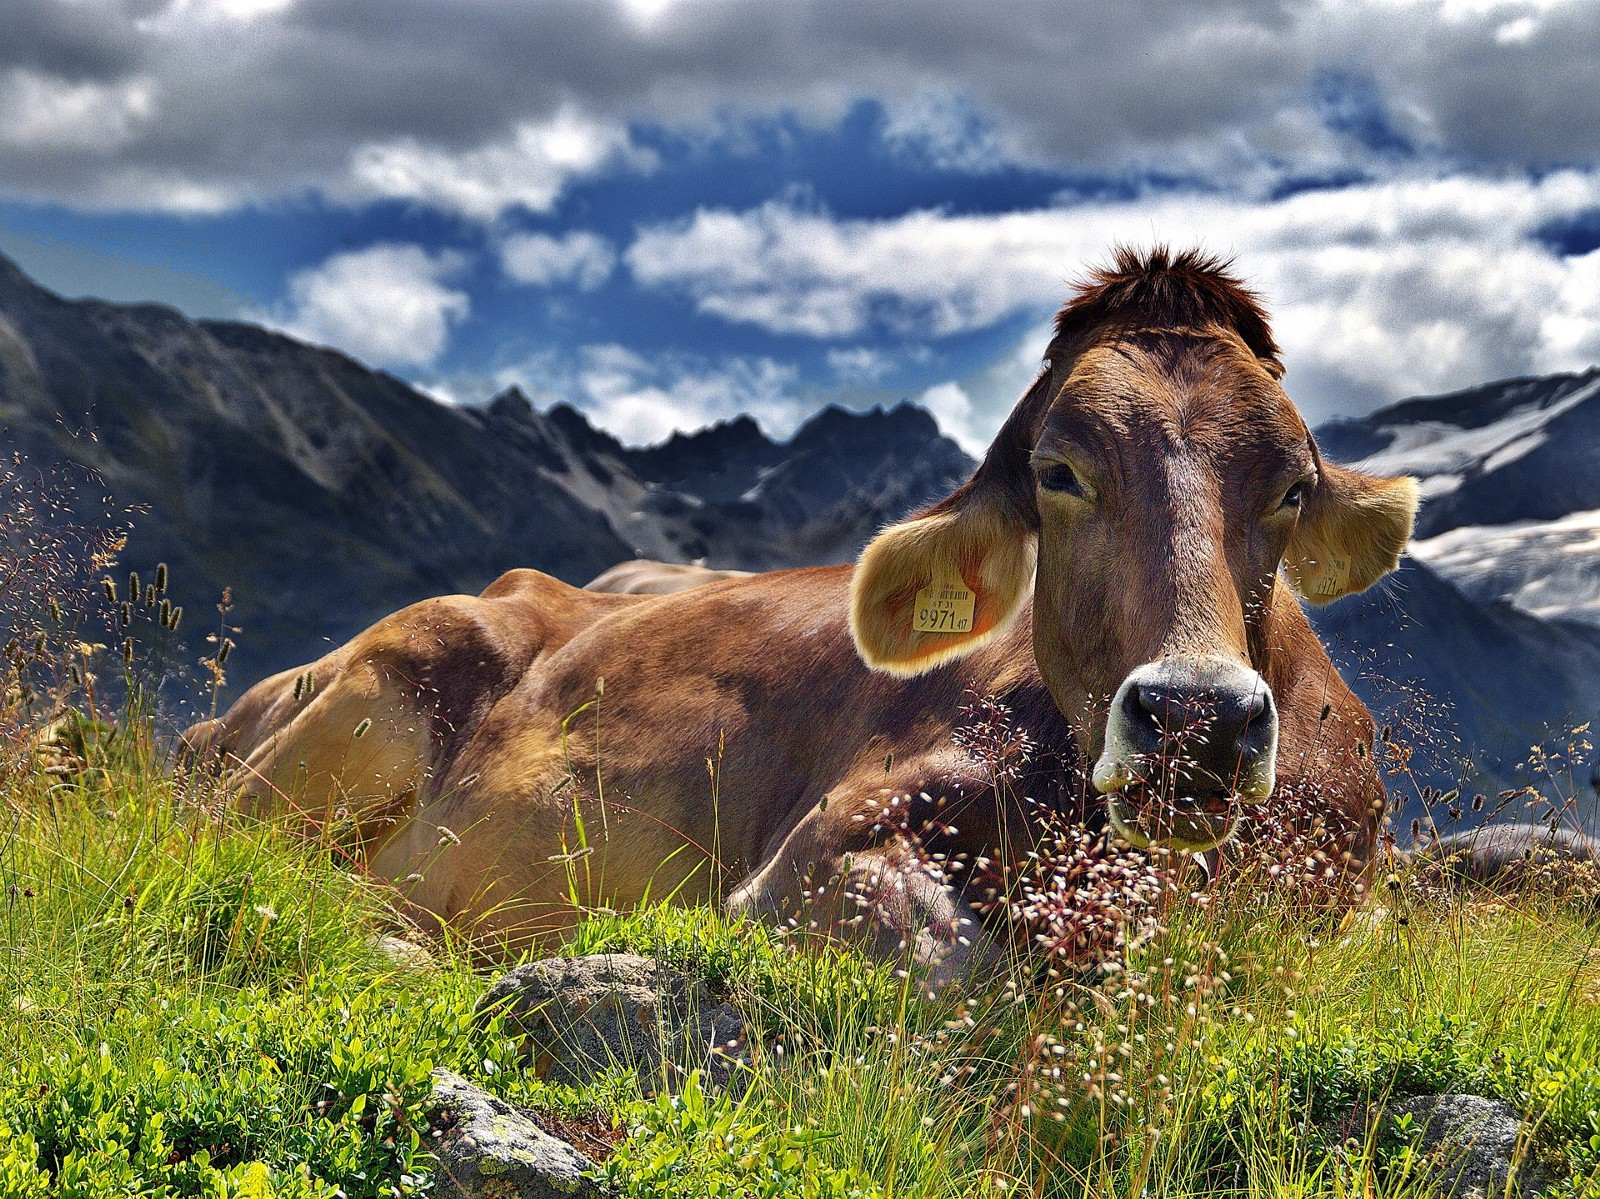 A lazy cow